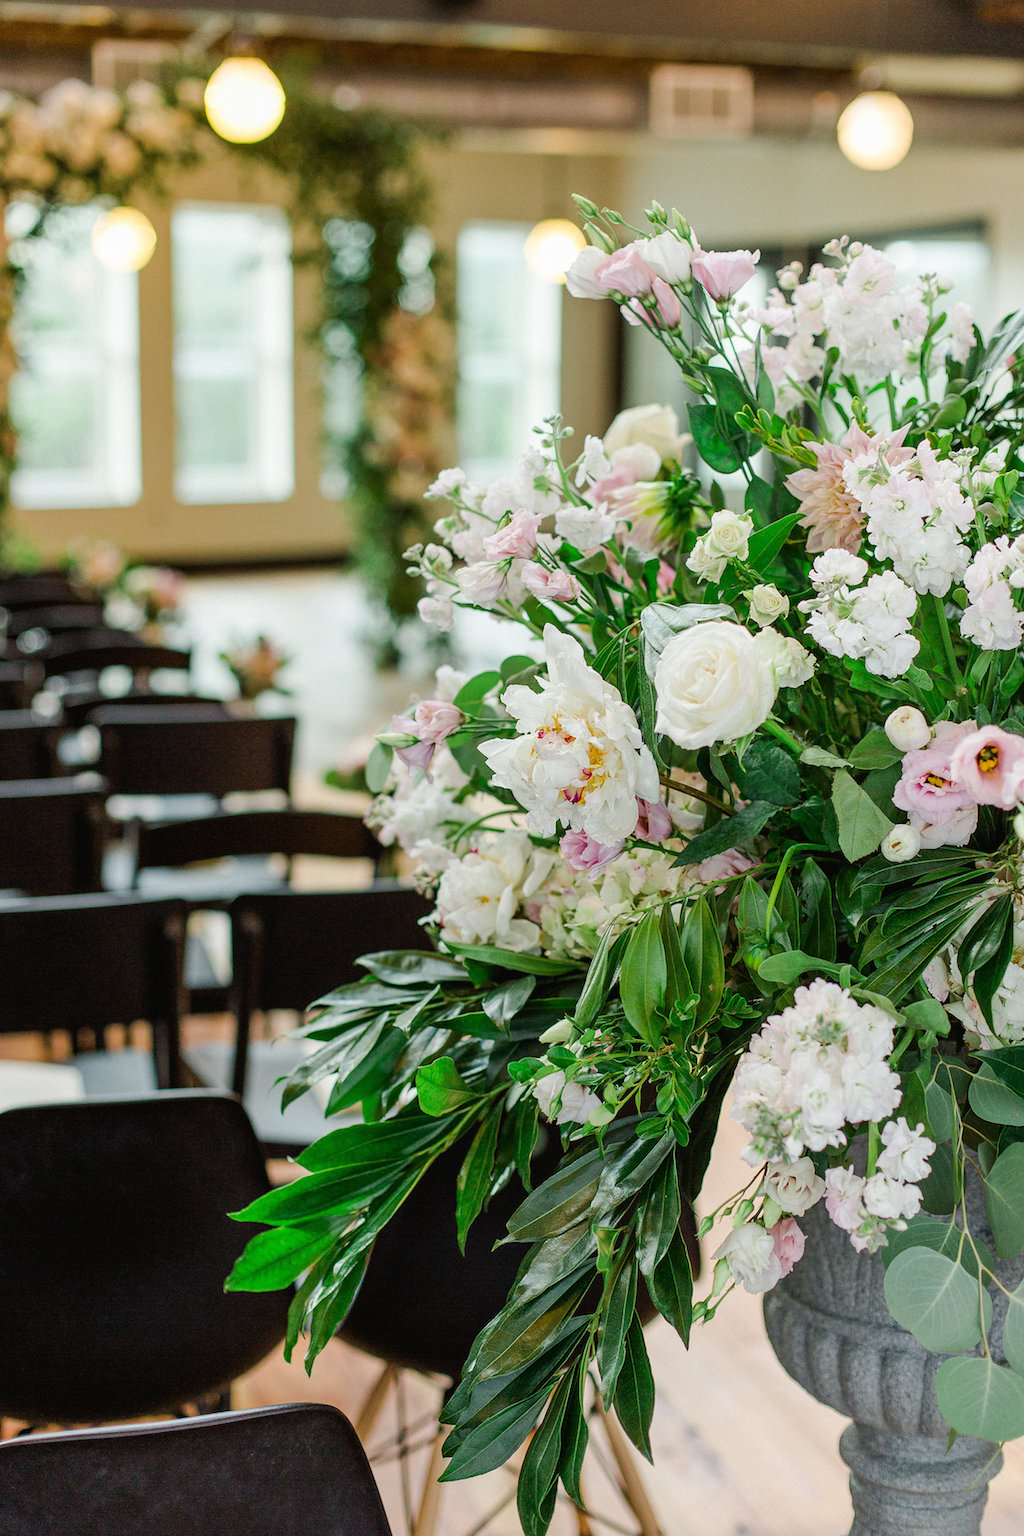 Indoor Industrial Wedding Ceremony Decor with Floral and Greenery Arch, White and BLush Flower with Natural Greenery in Tall Planter, and Mismatched Dark Wooden Chairs